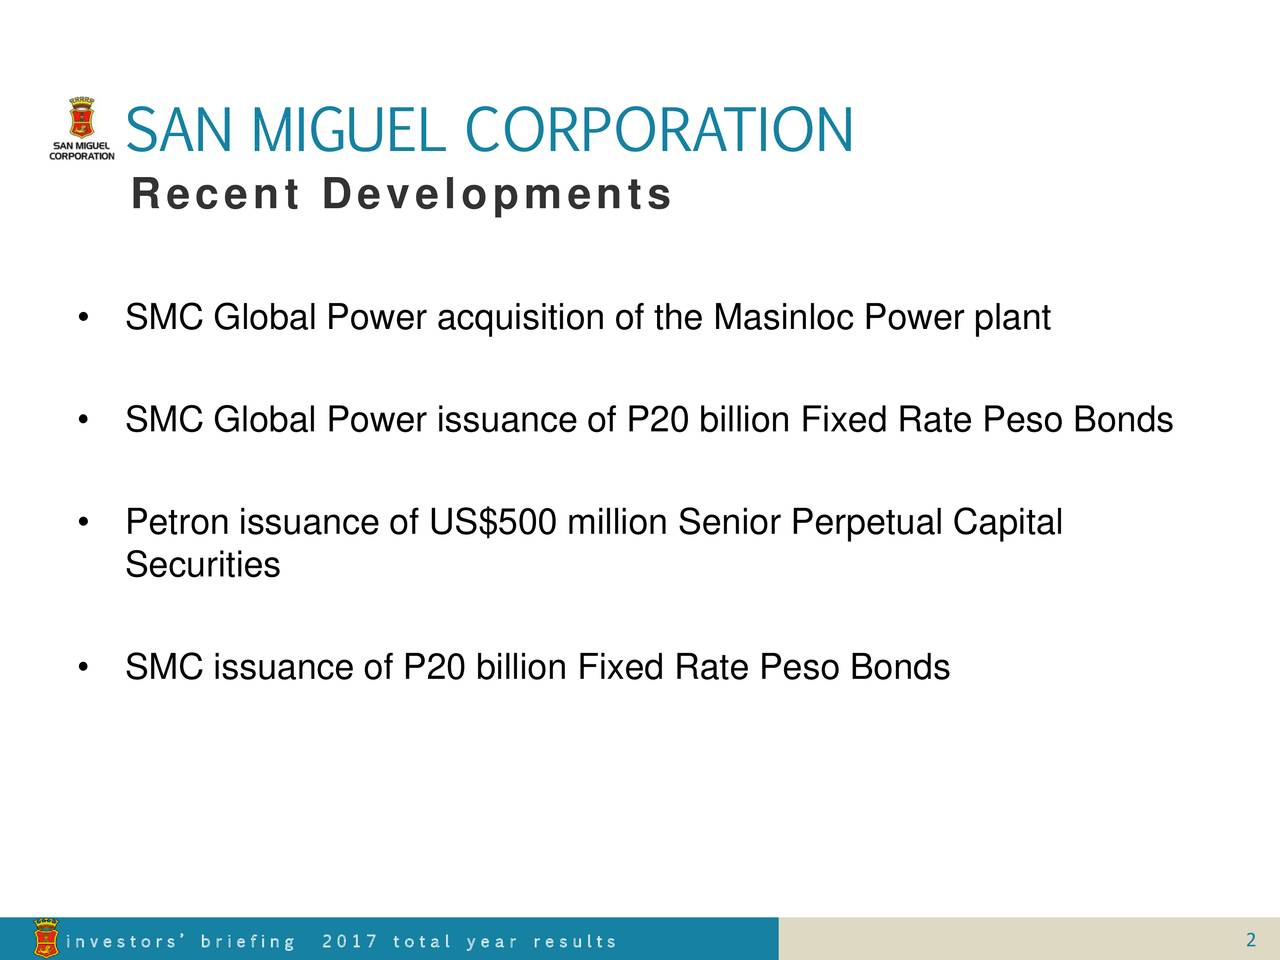 tows analysis of san miguel corporation San miguel case analysis   vision san miguel corporation's vision is to take the lead in realizing commitment to social development in the company's effort to .